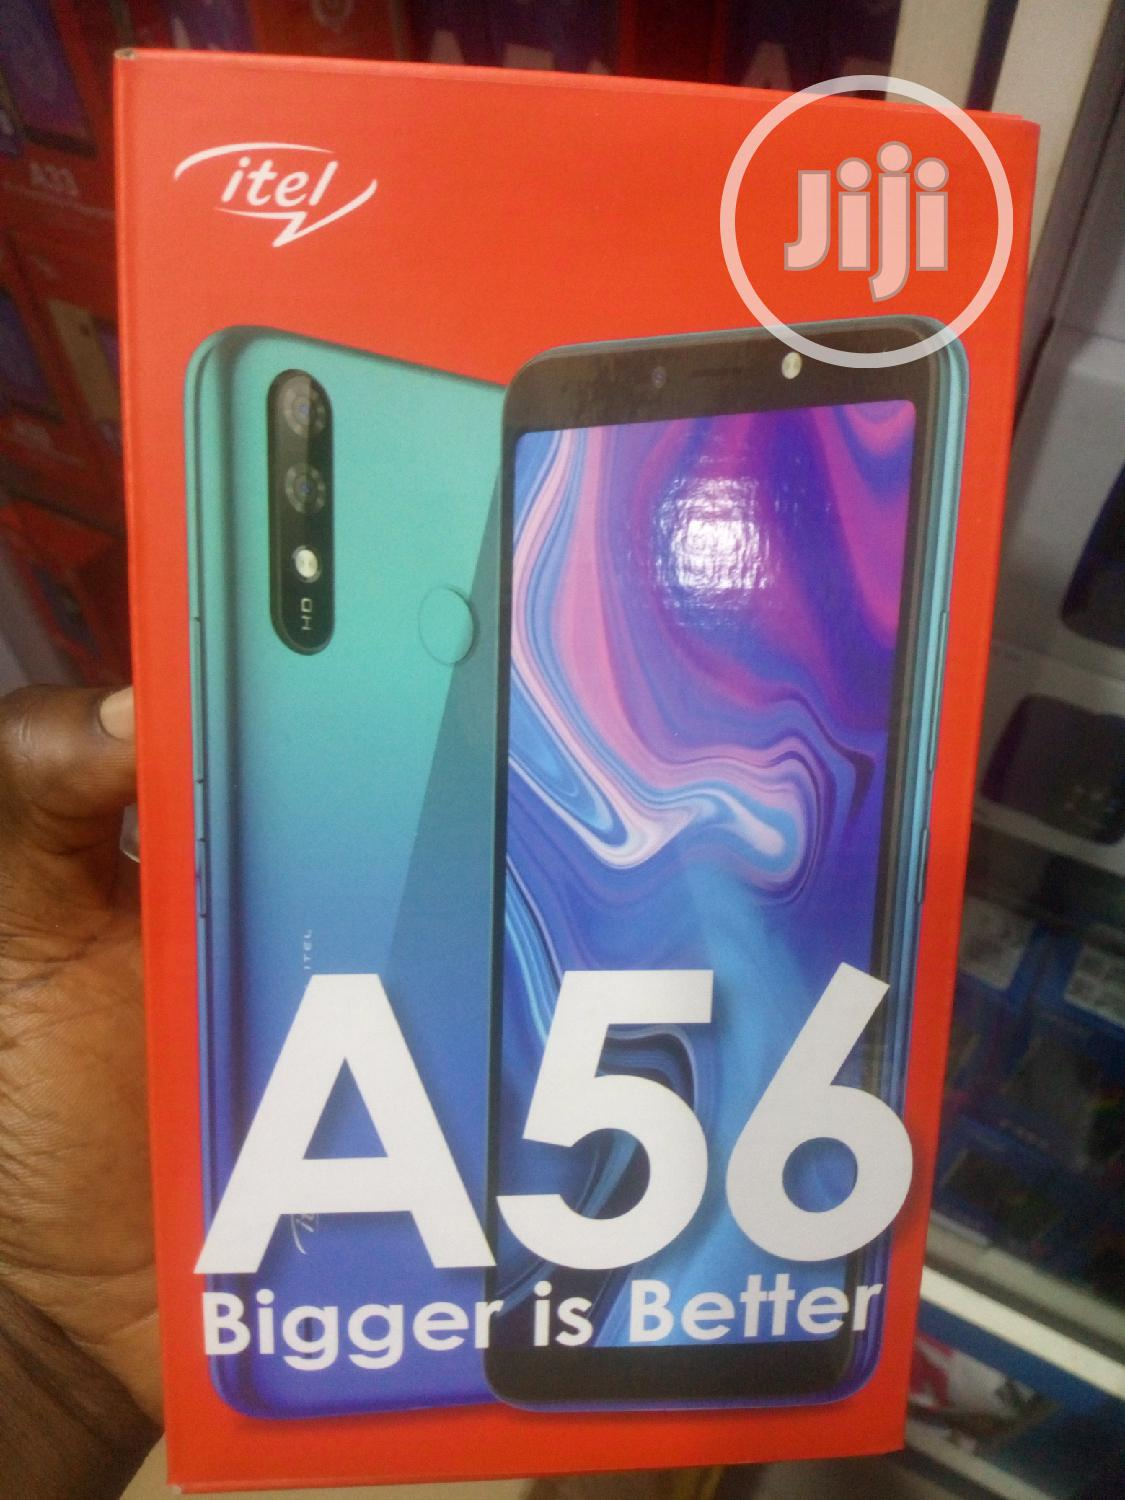 Archive: New Itel A56 16 GB